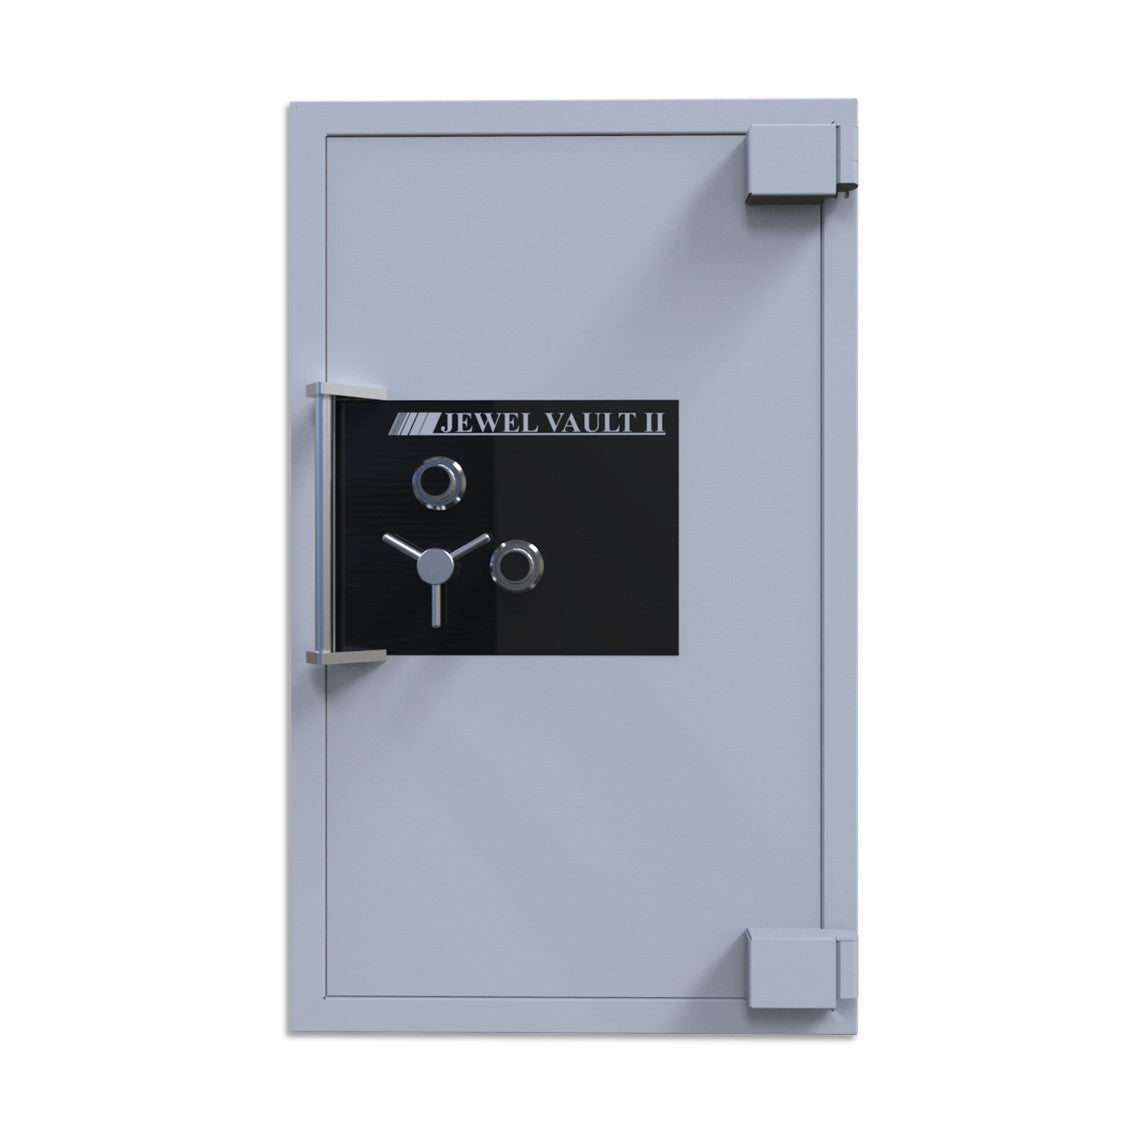 Mutual JV-6034 TL-30 High Security Jewelry Safe